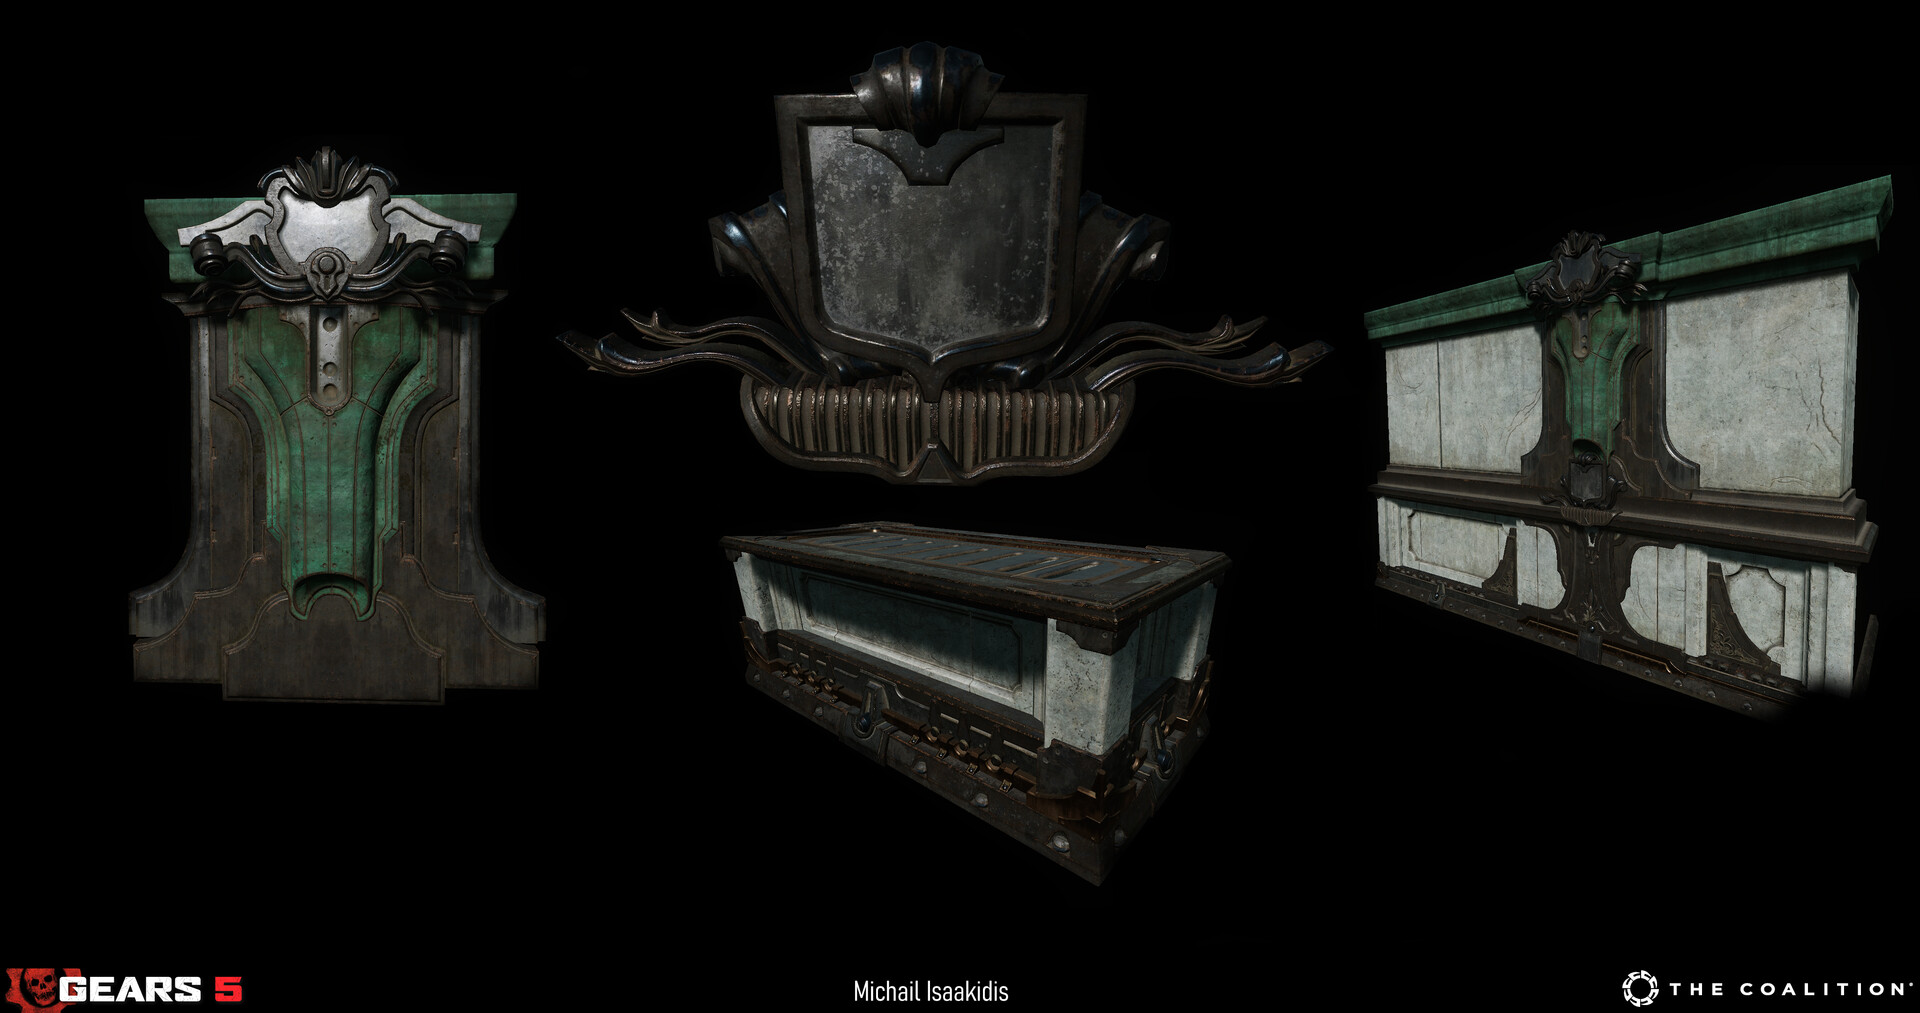 Theses assets utilise a combination of unique bake materials and trim sheets.  Overall a total of 4 materials were created to populate the majority of the walls and covers in the map.